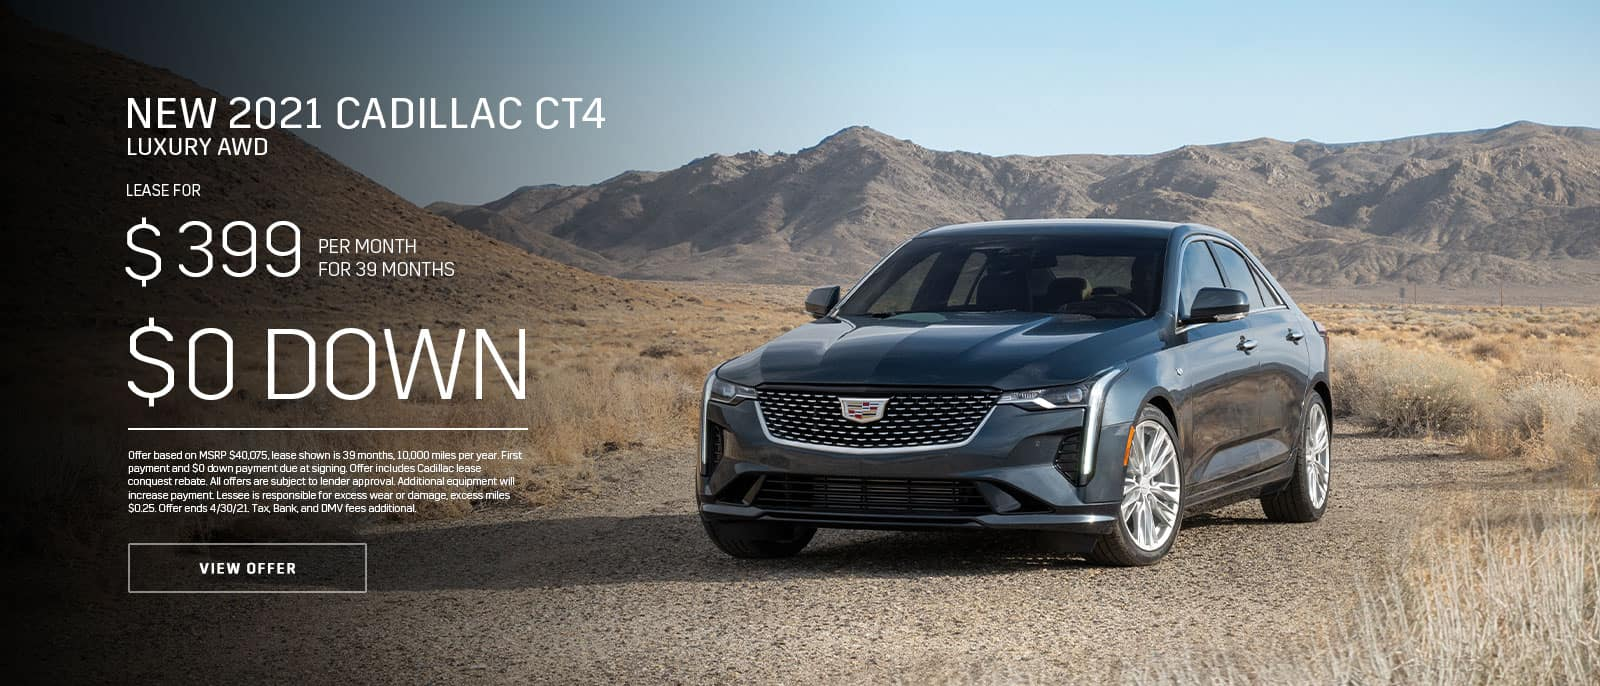 New 2021 Cadillac CT4 Lux AWD Subtext: $399/month for 39 months, $0 DOWN